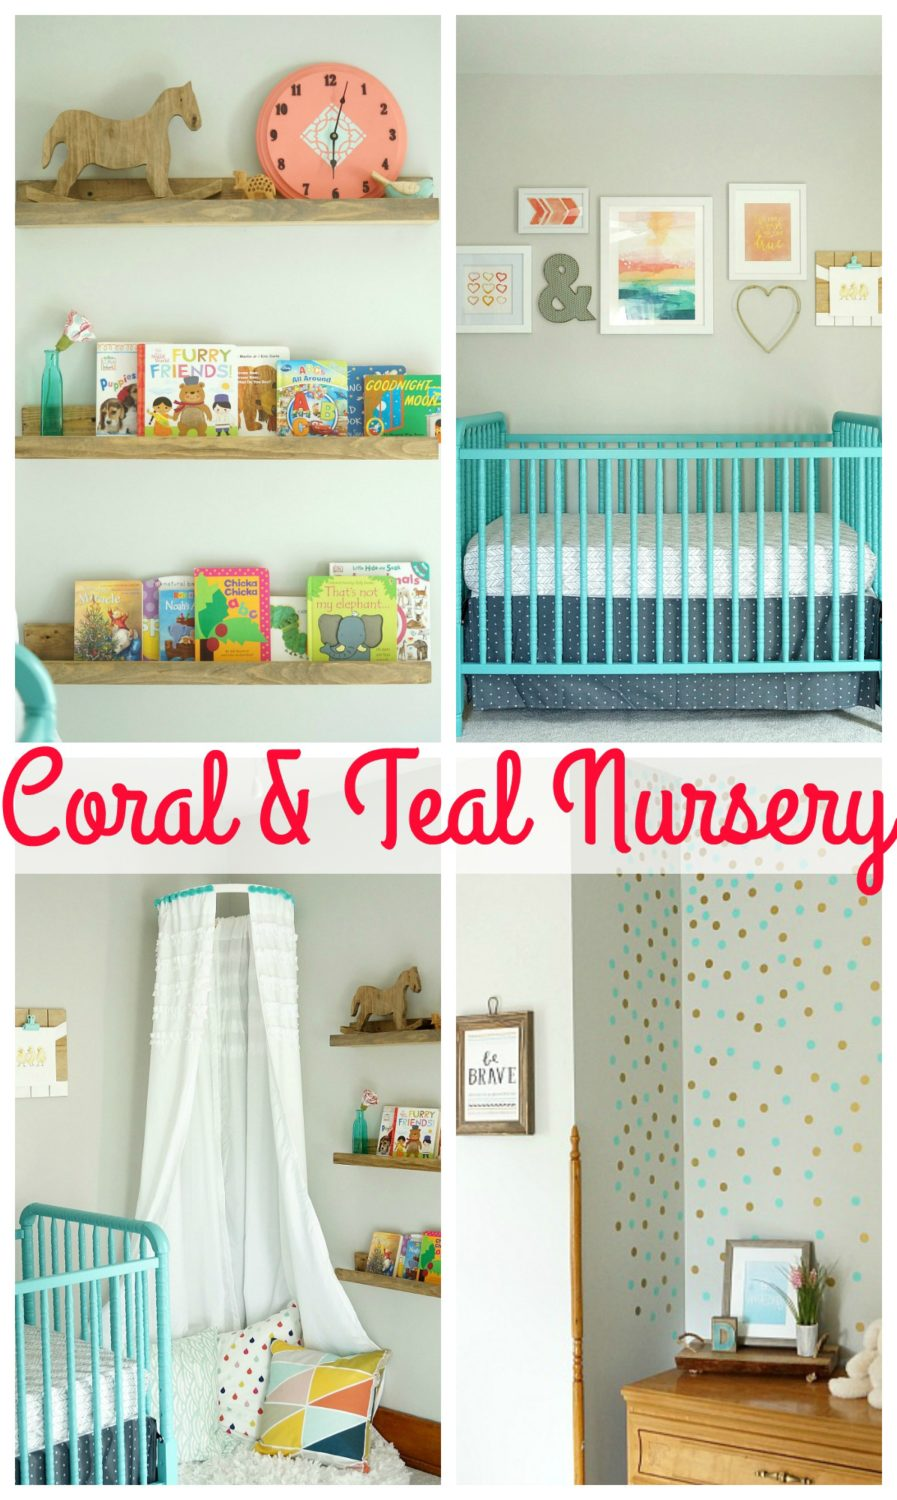 Bright and Colorful Coral and Teal Nursery with Polka Dot Wall, Gallery Wall, DIY Canopy, and Book Display